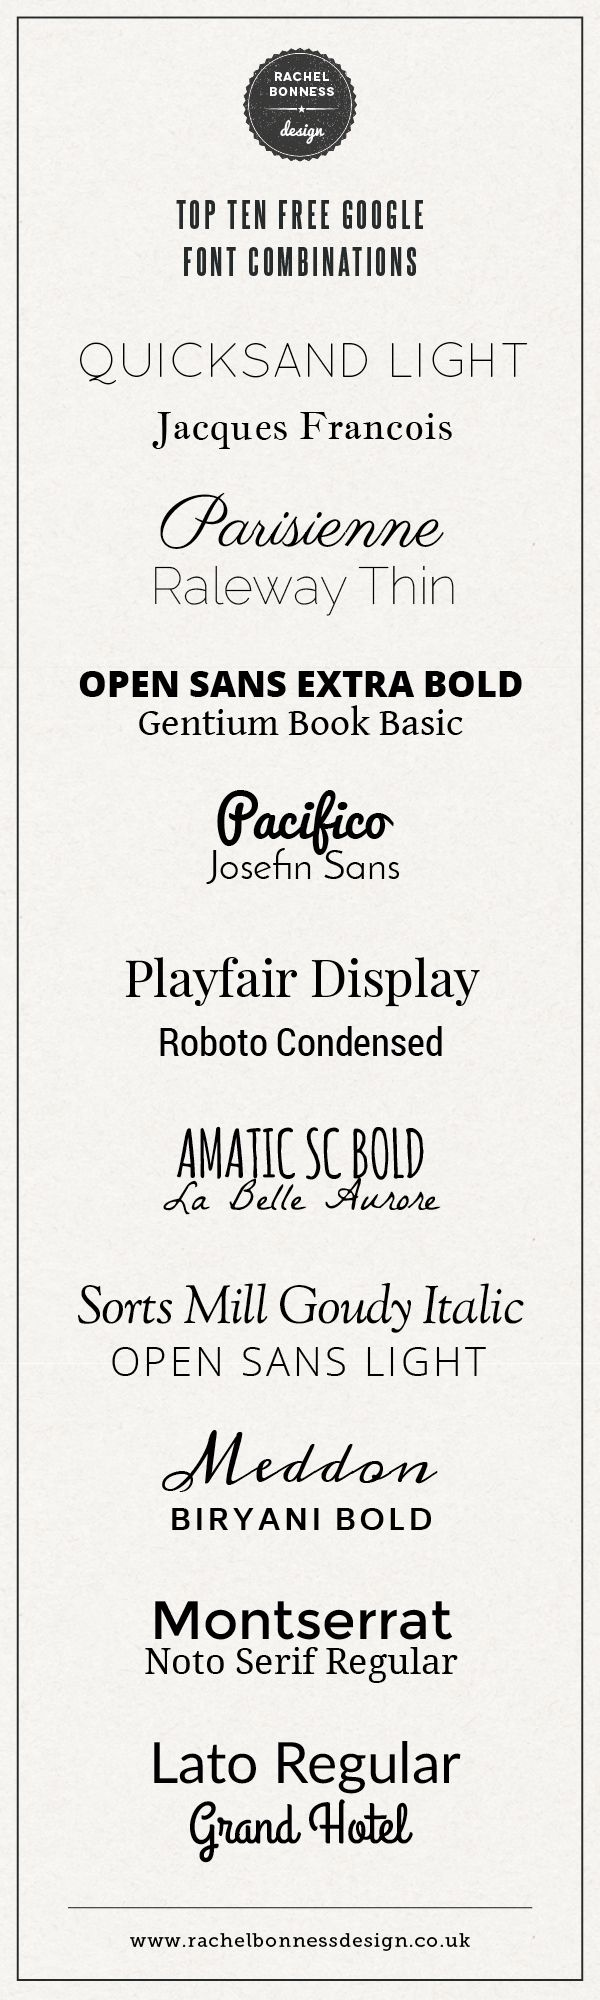 10 combinaisons de typo gratuites Google pour votre blog / Top Ten free Google font combinations by Rachel Bonness Design #fontpairing #fontcombination #googlefont